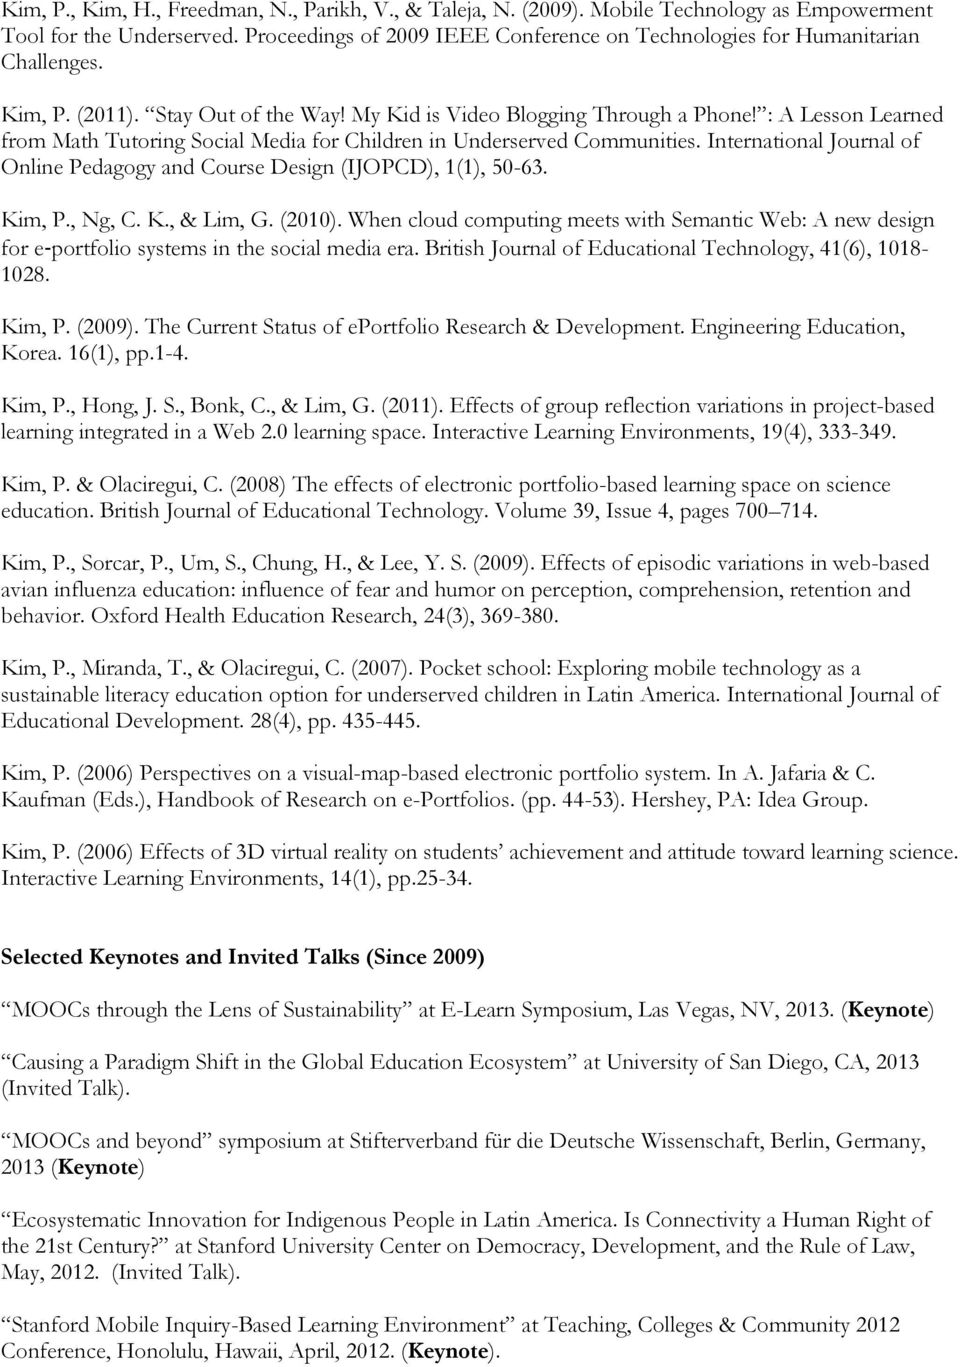 : A Lesson Learned from Math Tutoring Social Media for Children in Underserved Communities. International Journal of Online Pedagogy and Course Design (IJOPCD), 1(1), 50-63. Kim, P., Ng, C. K., & Lim, G.